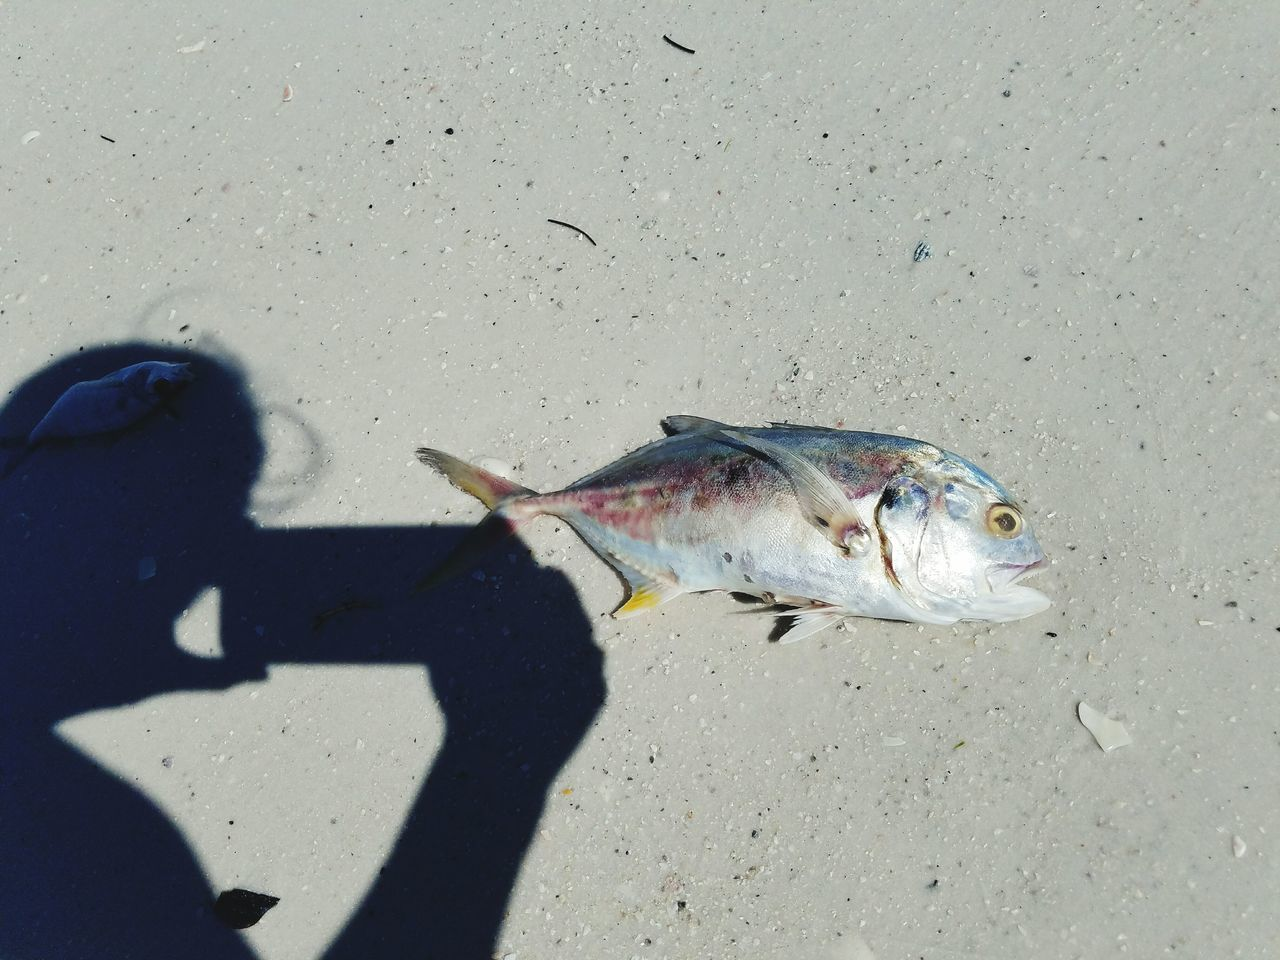 Shadow self portrait with Mr. Fish. Shadow One Animal Sunlight Sand High Angle View Dead Animal Zoology Outdoors Summer Red Tide Fish Marine Life EyeEm Nature Lover Eyeyem Travel Collection Eye4photography